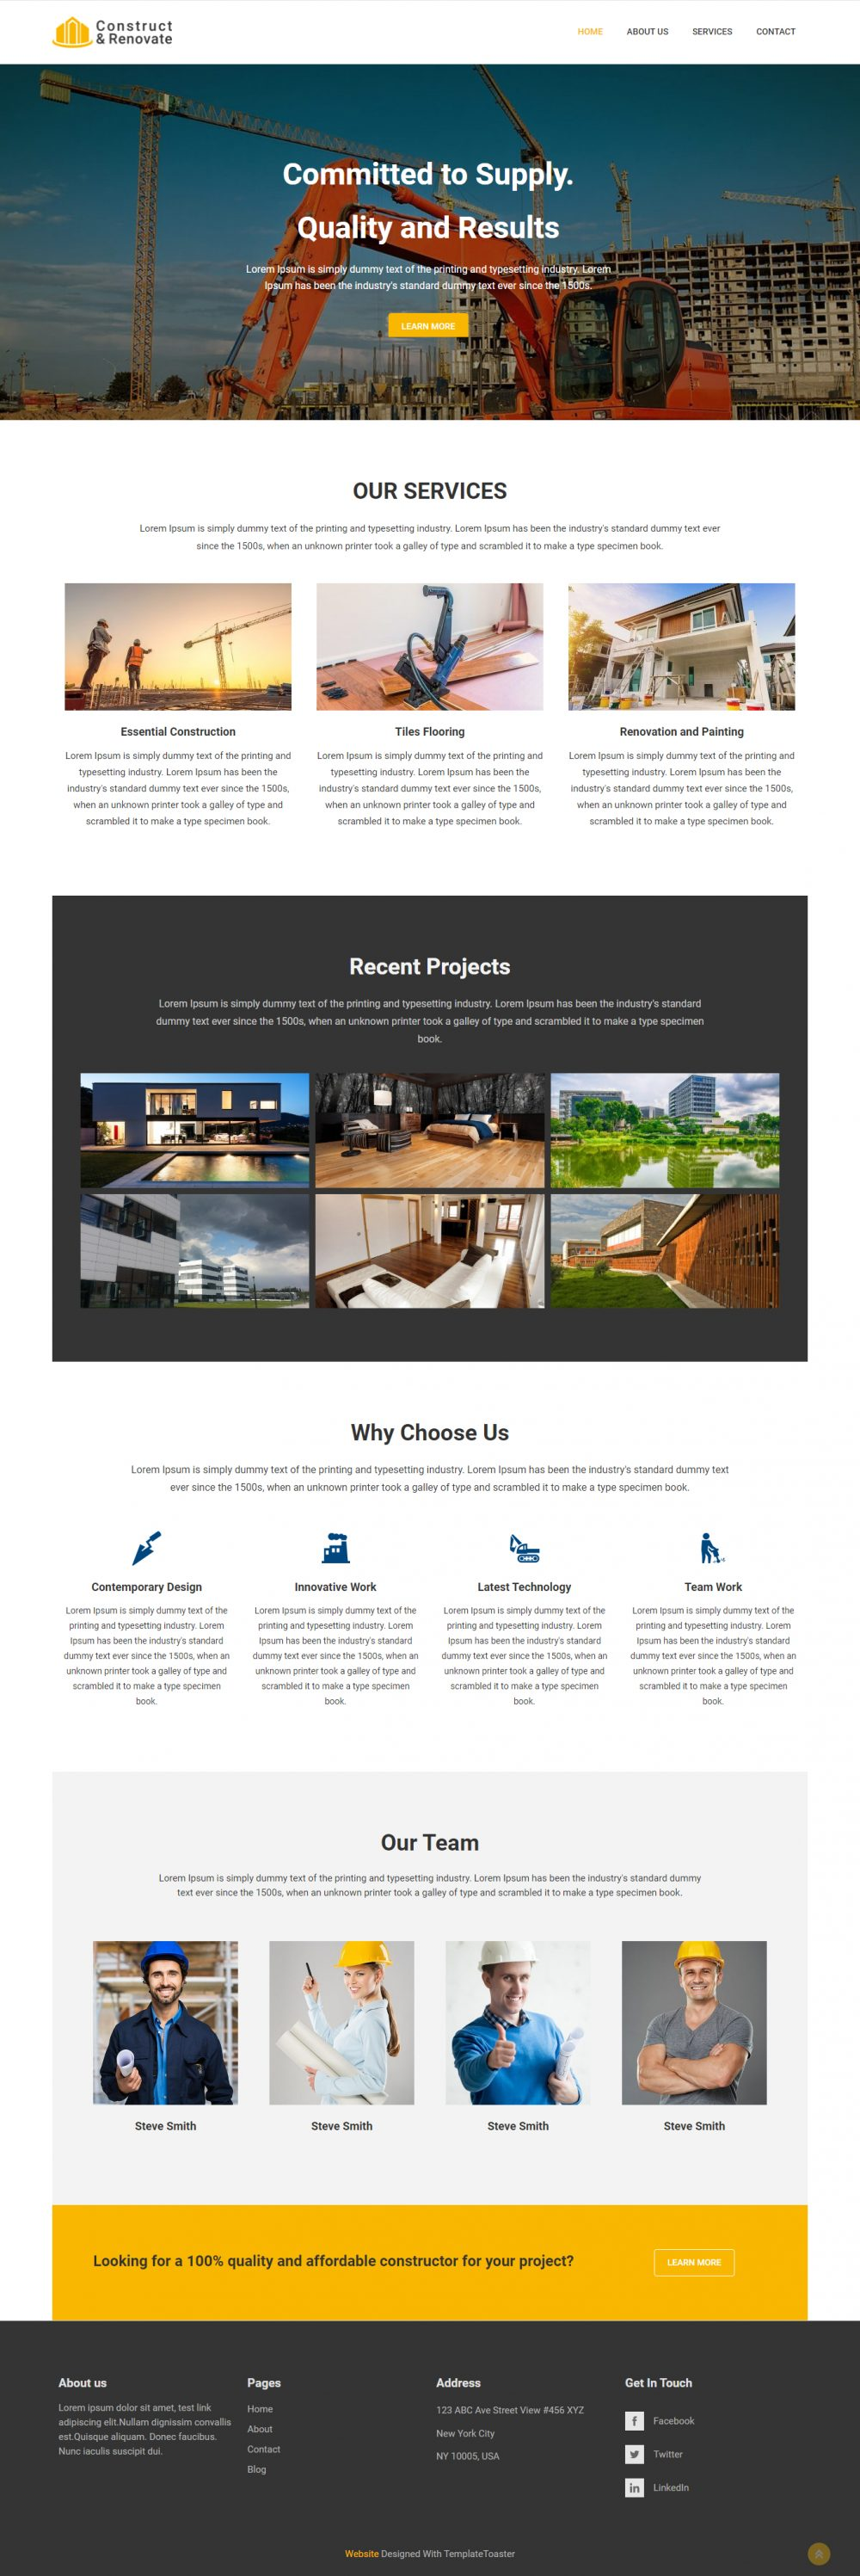 Construct Renovate Construction Company Template